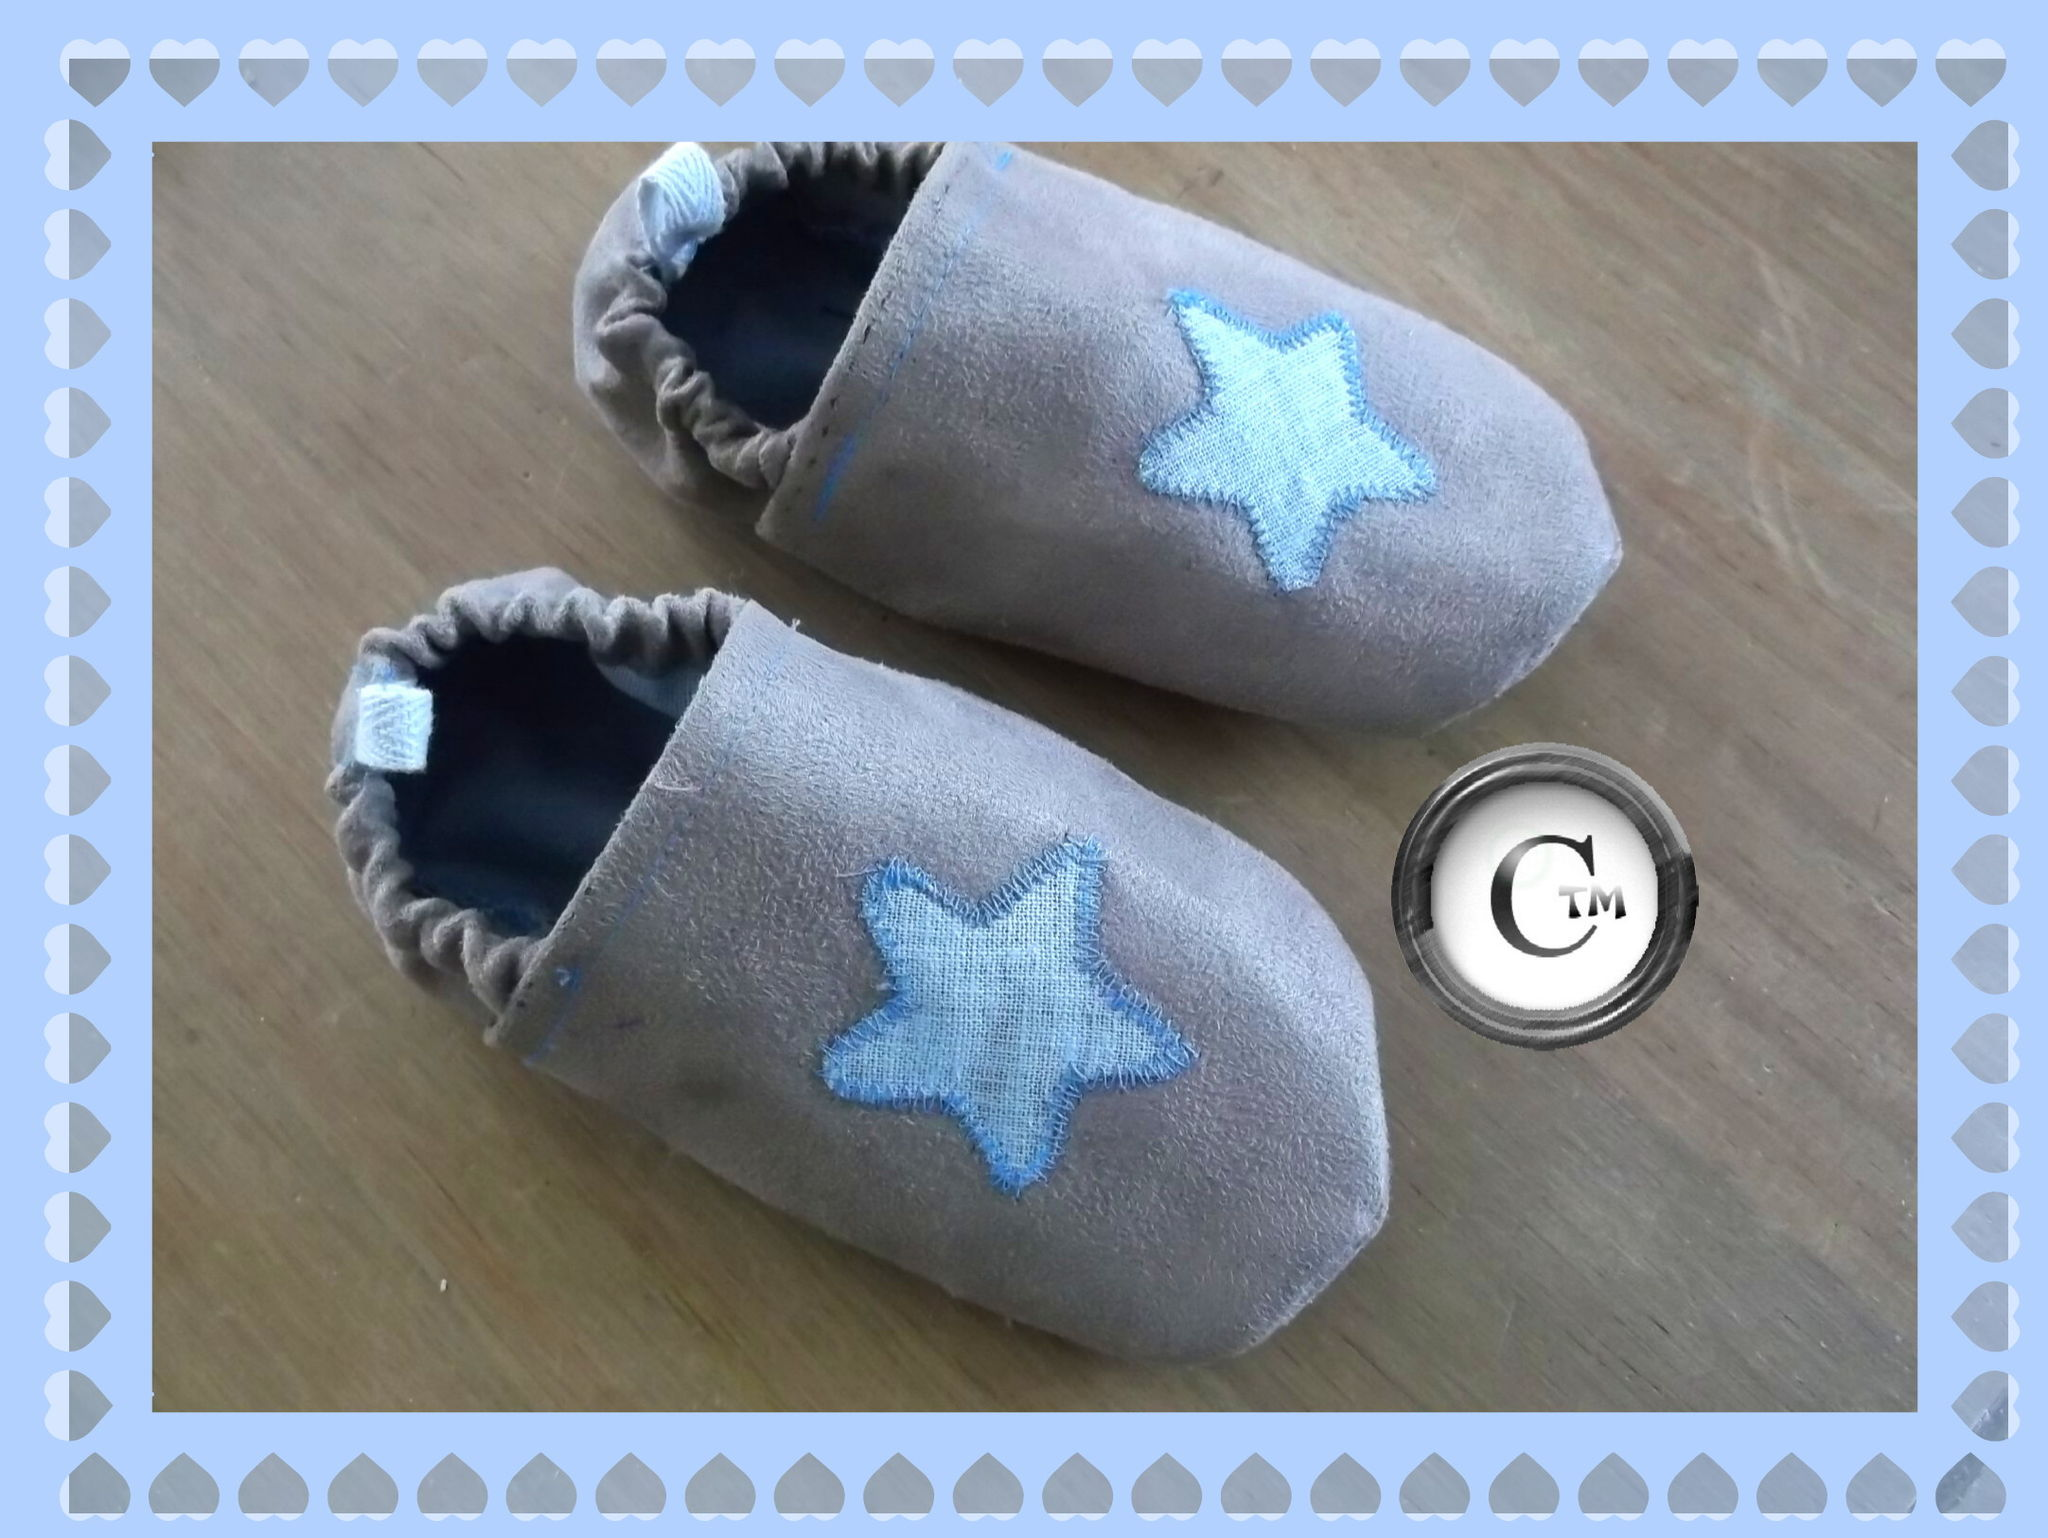 Tuto couture chausson b b facile 9 pictures to pin on - Tuto chausson bebe couture ...